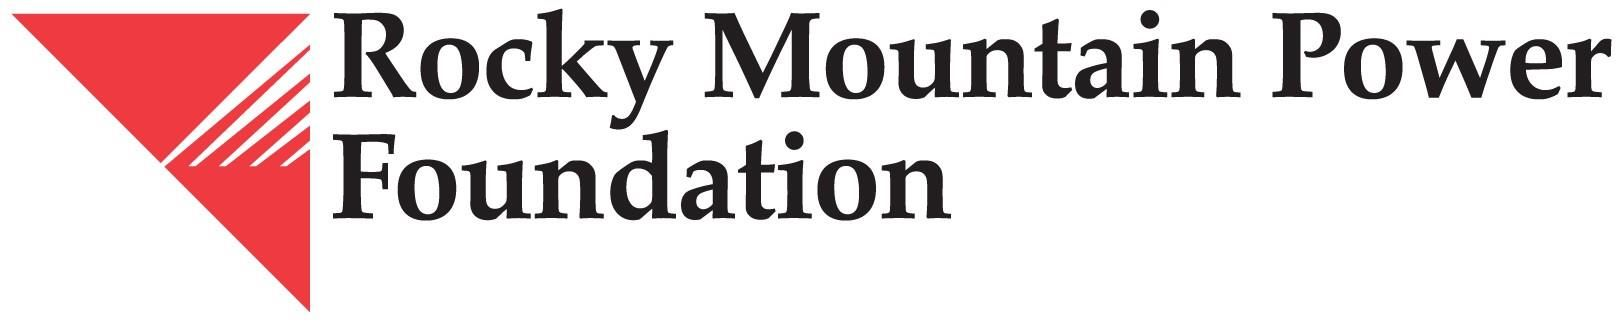 Rocky Mountain Power Foundation